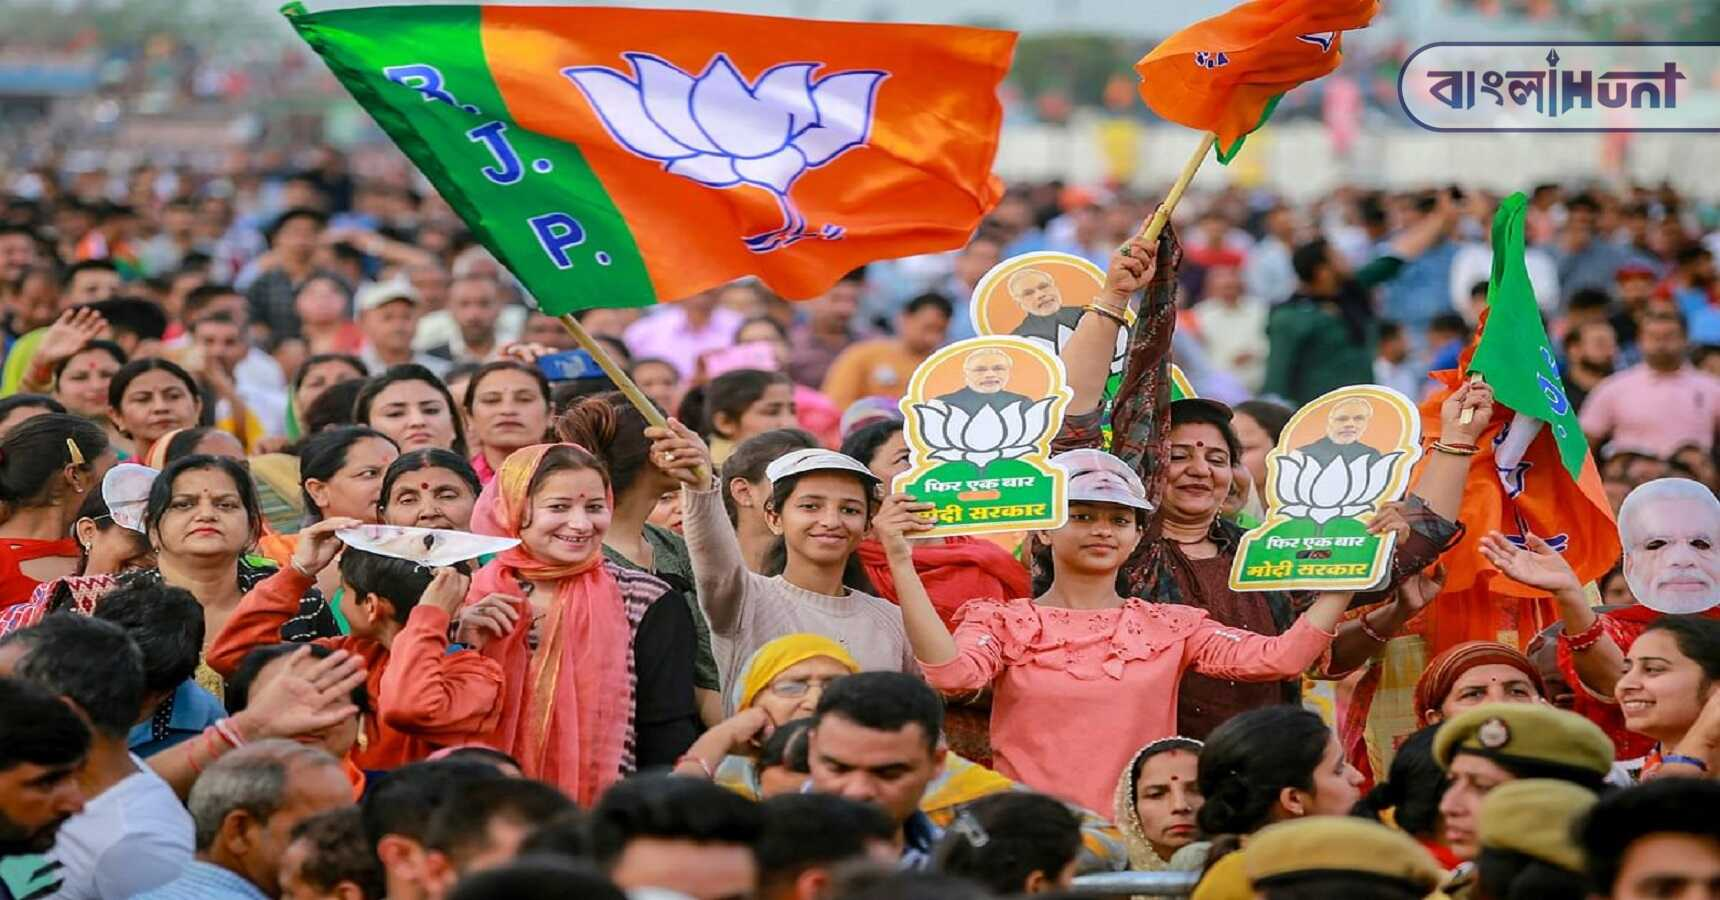 The state BJP has sent a list of potential candidates for 130 seats